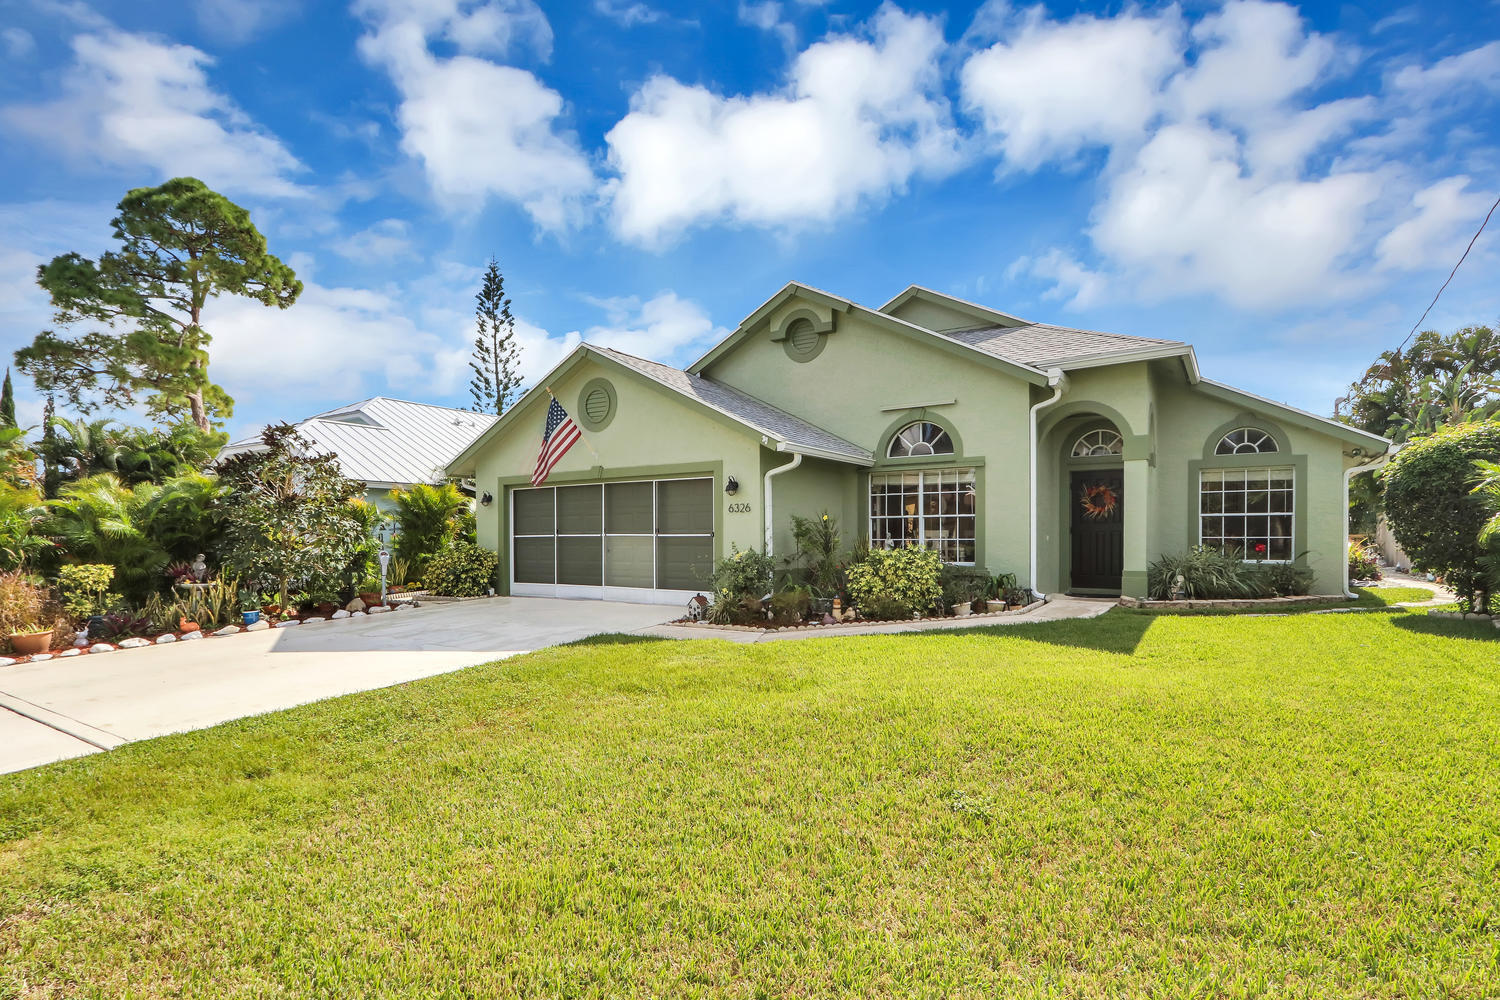 Photo of 6326 Barbara Street, Jupiter, FL 33458